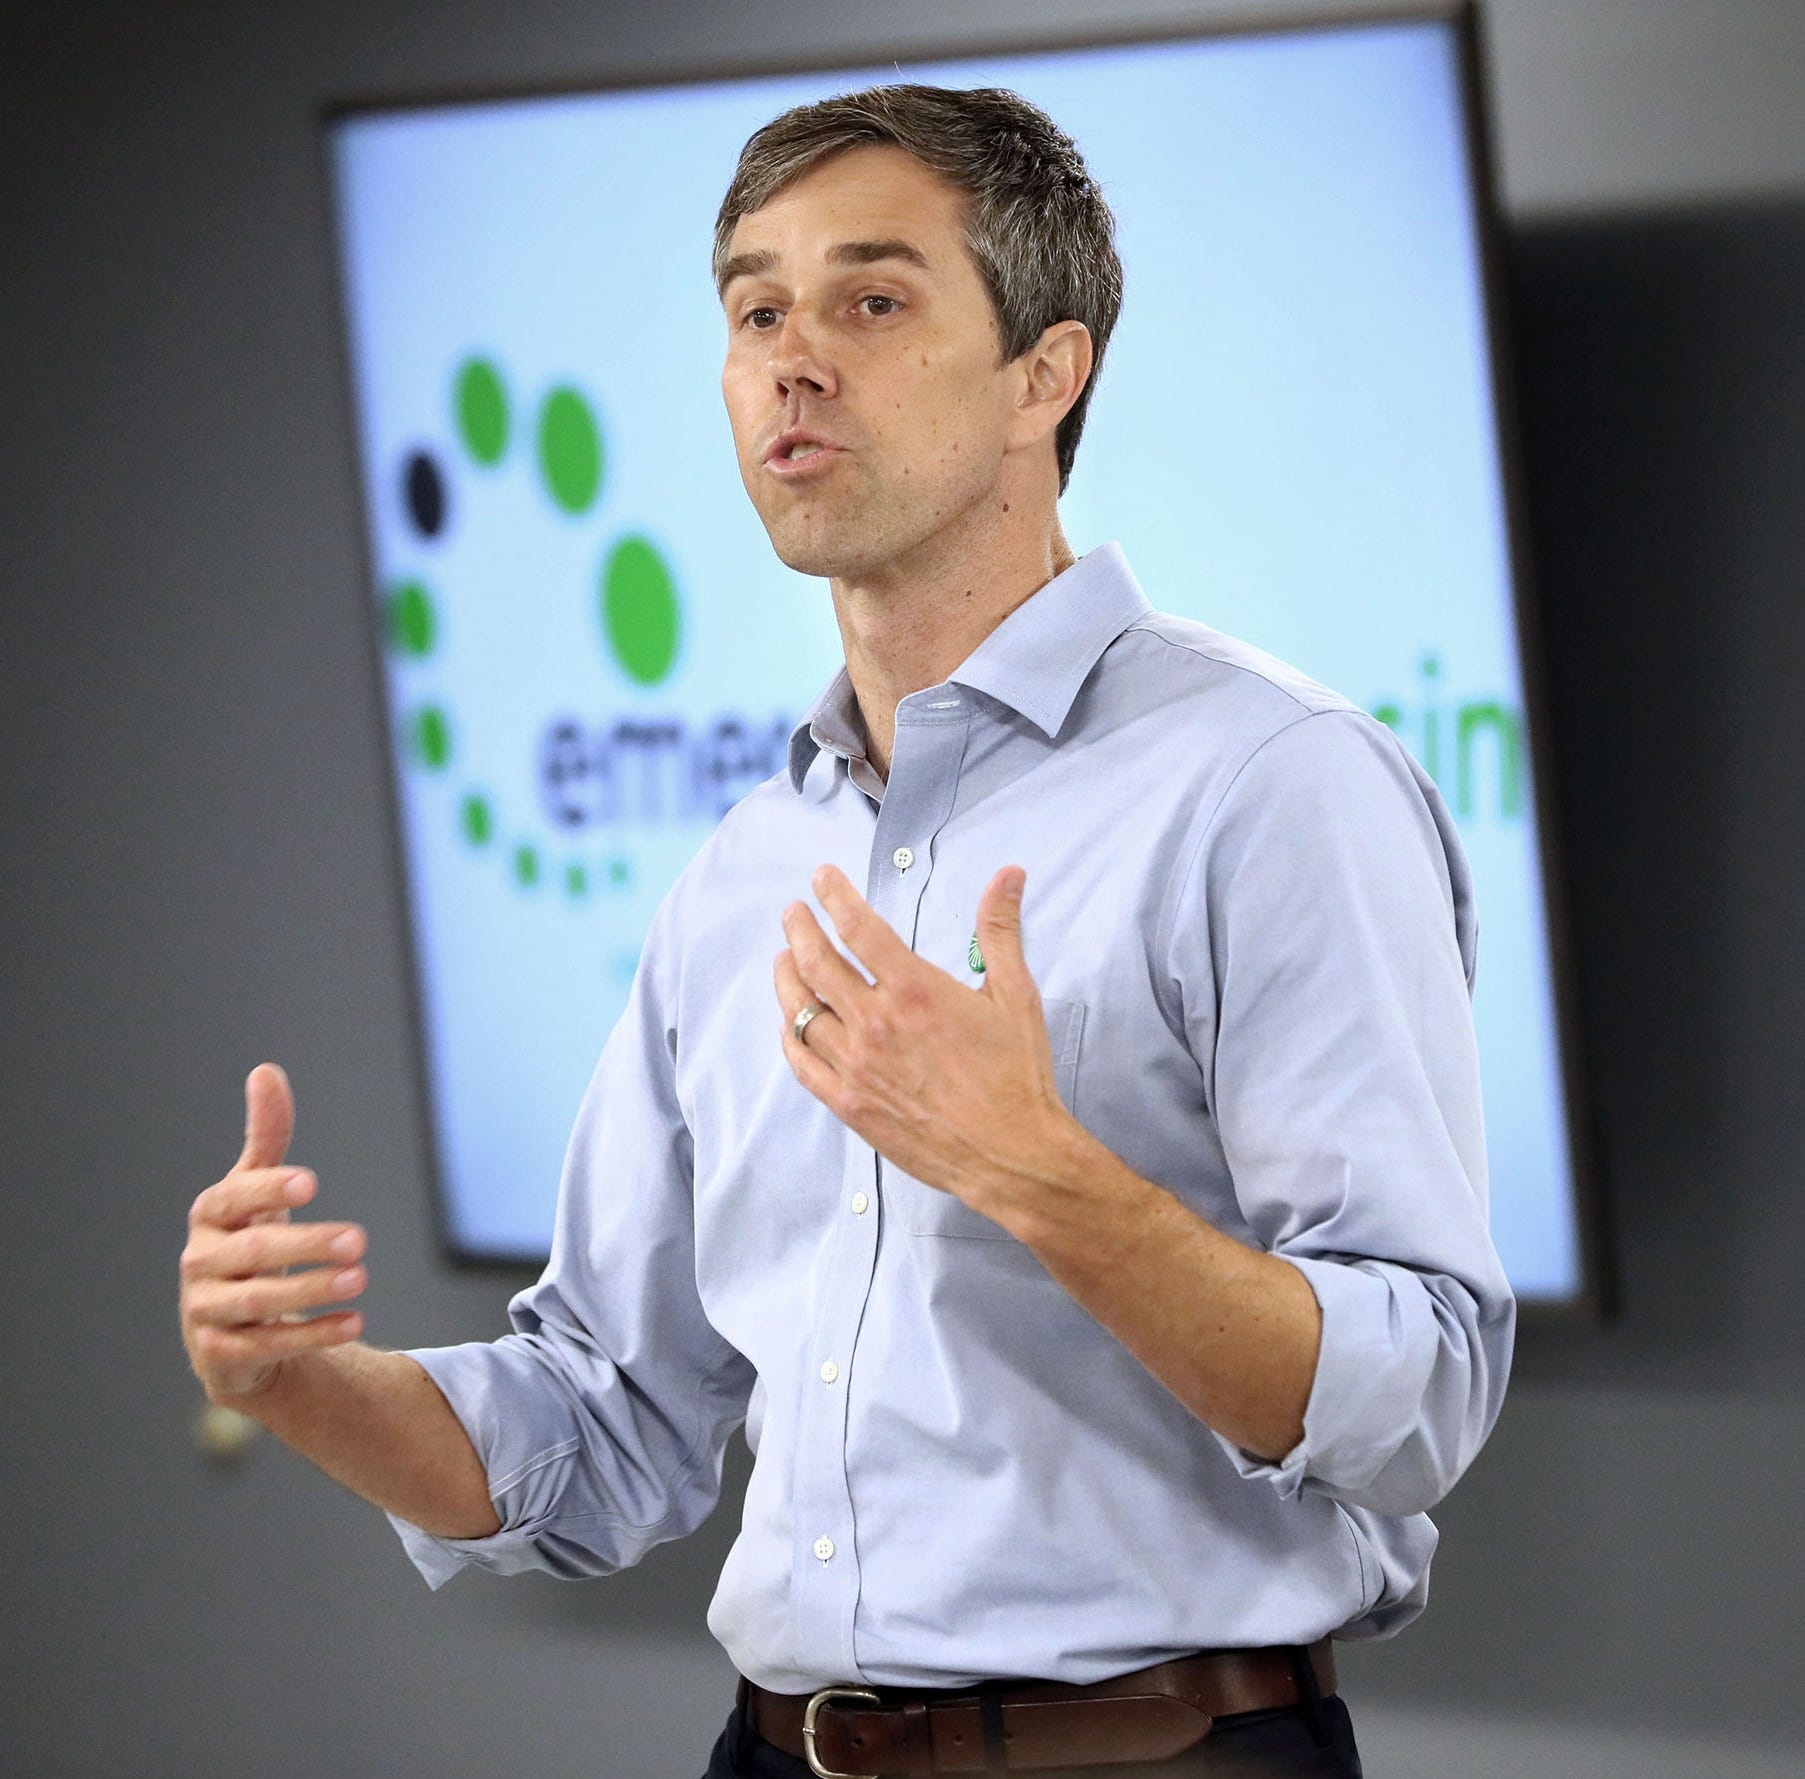 Beto's burger run: A stop at Culver's was part of O'Rourke's weekend visit to Wisconsin